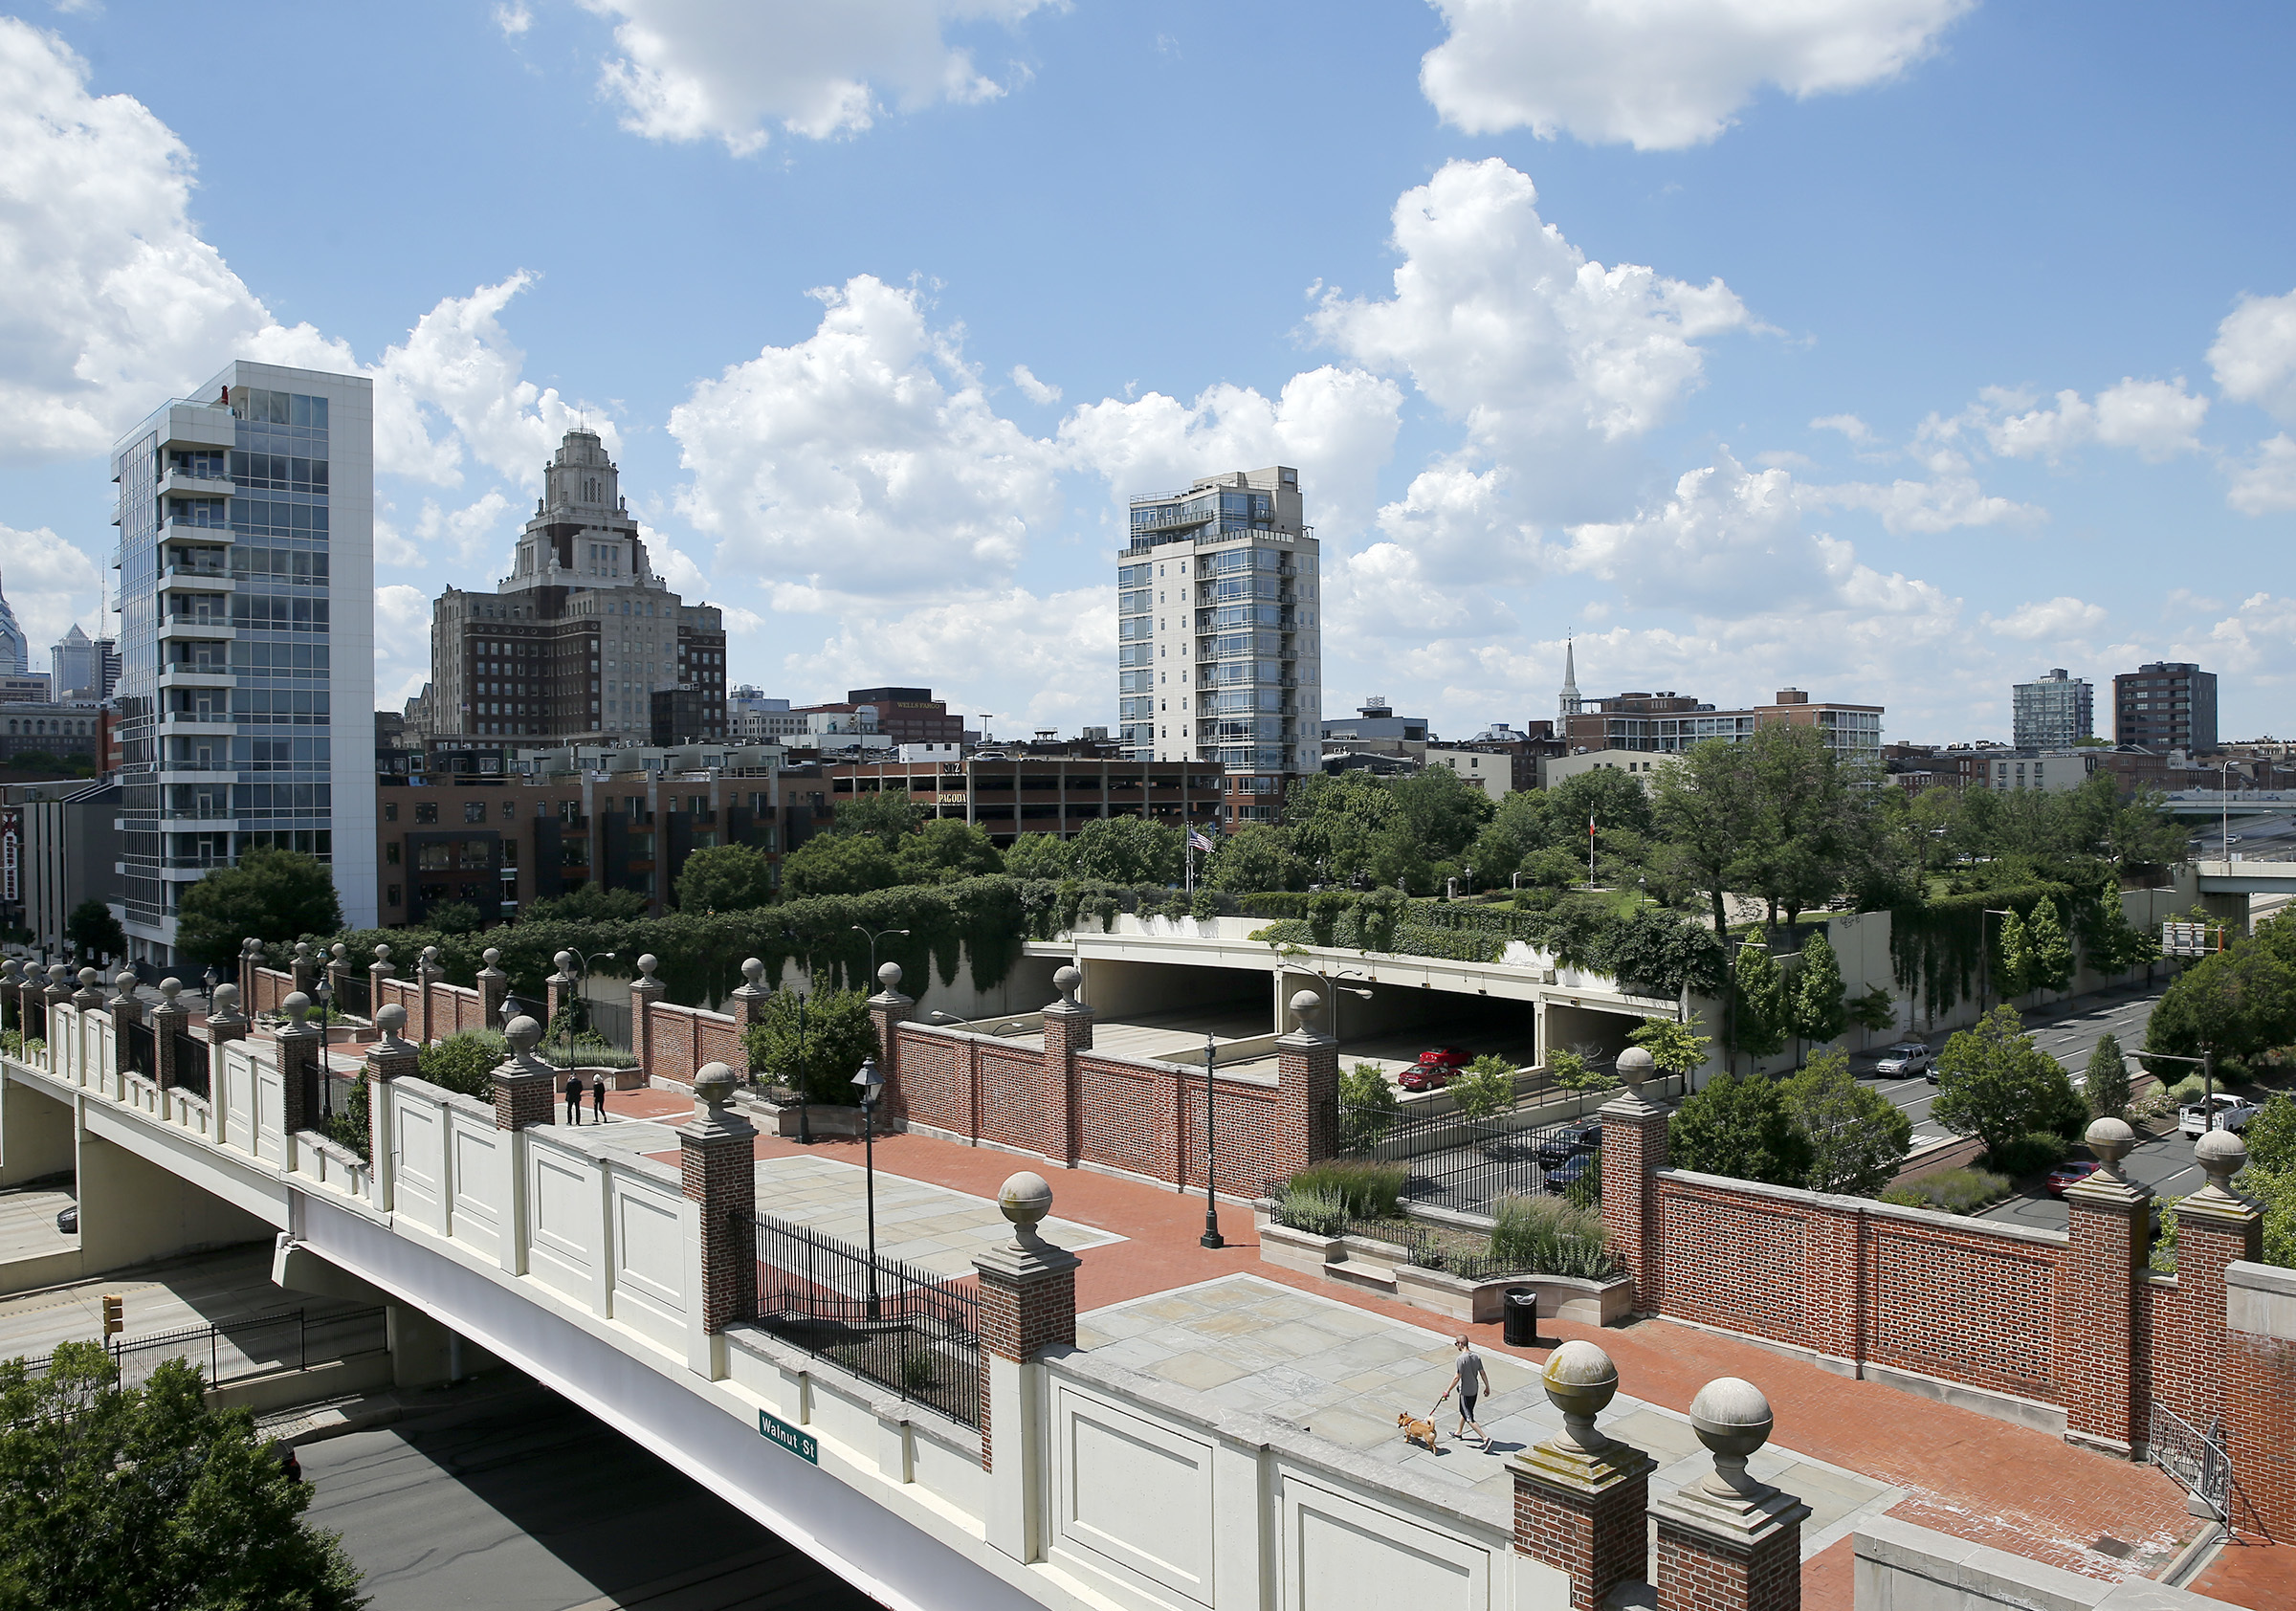 A view of the Walnut Street bridge over I-95 and Columbus Boulevard Friday, from the Hilton Penn´s Landing Hotel parking garage. YONG KIM / Staff Photographer